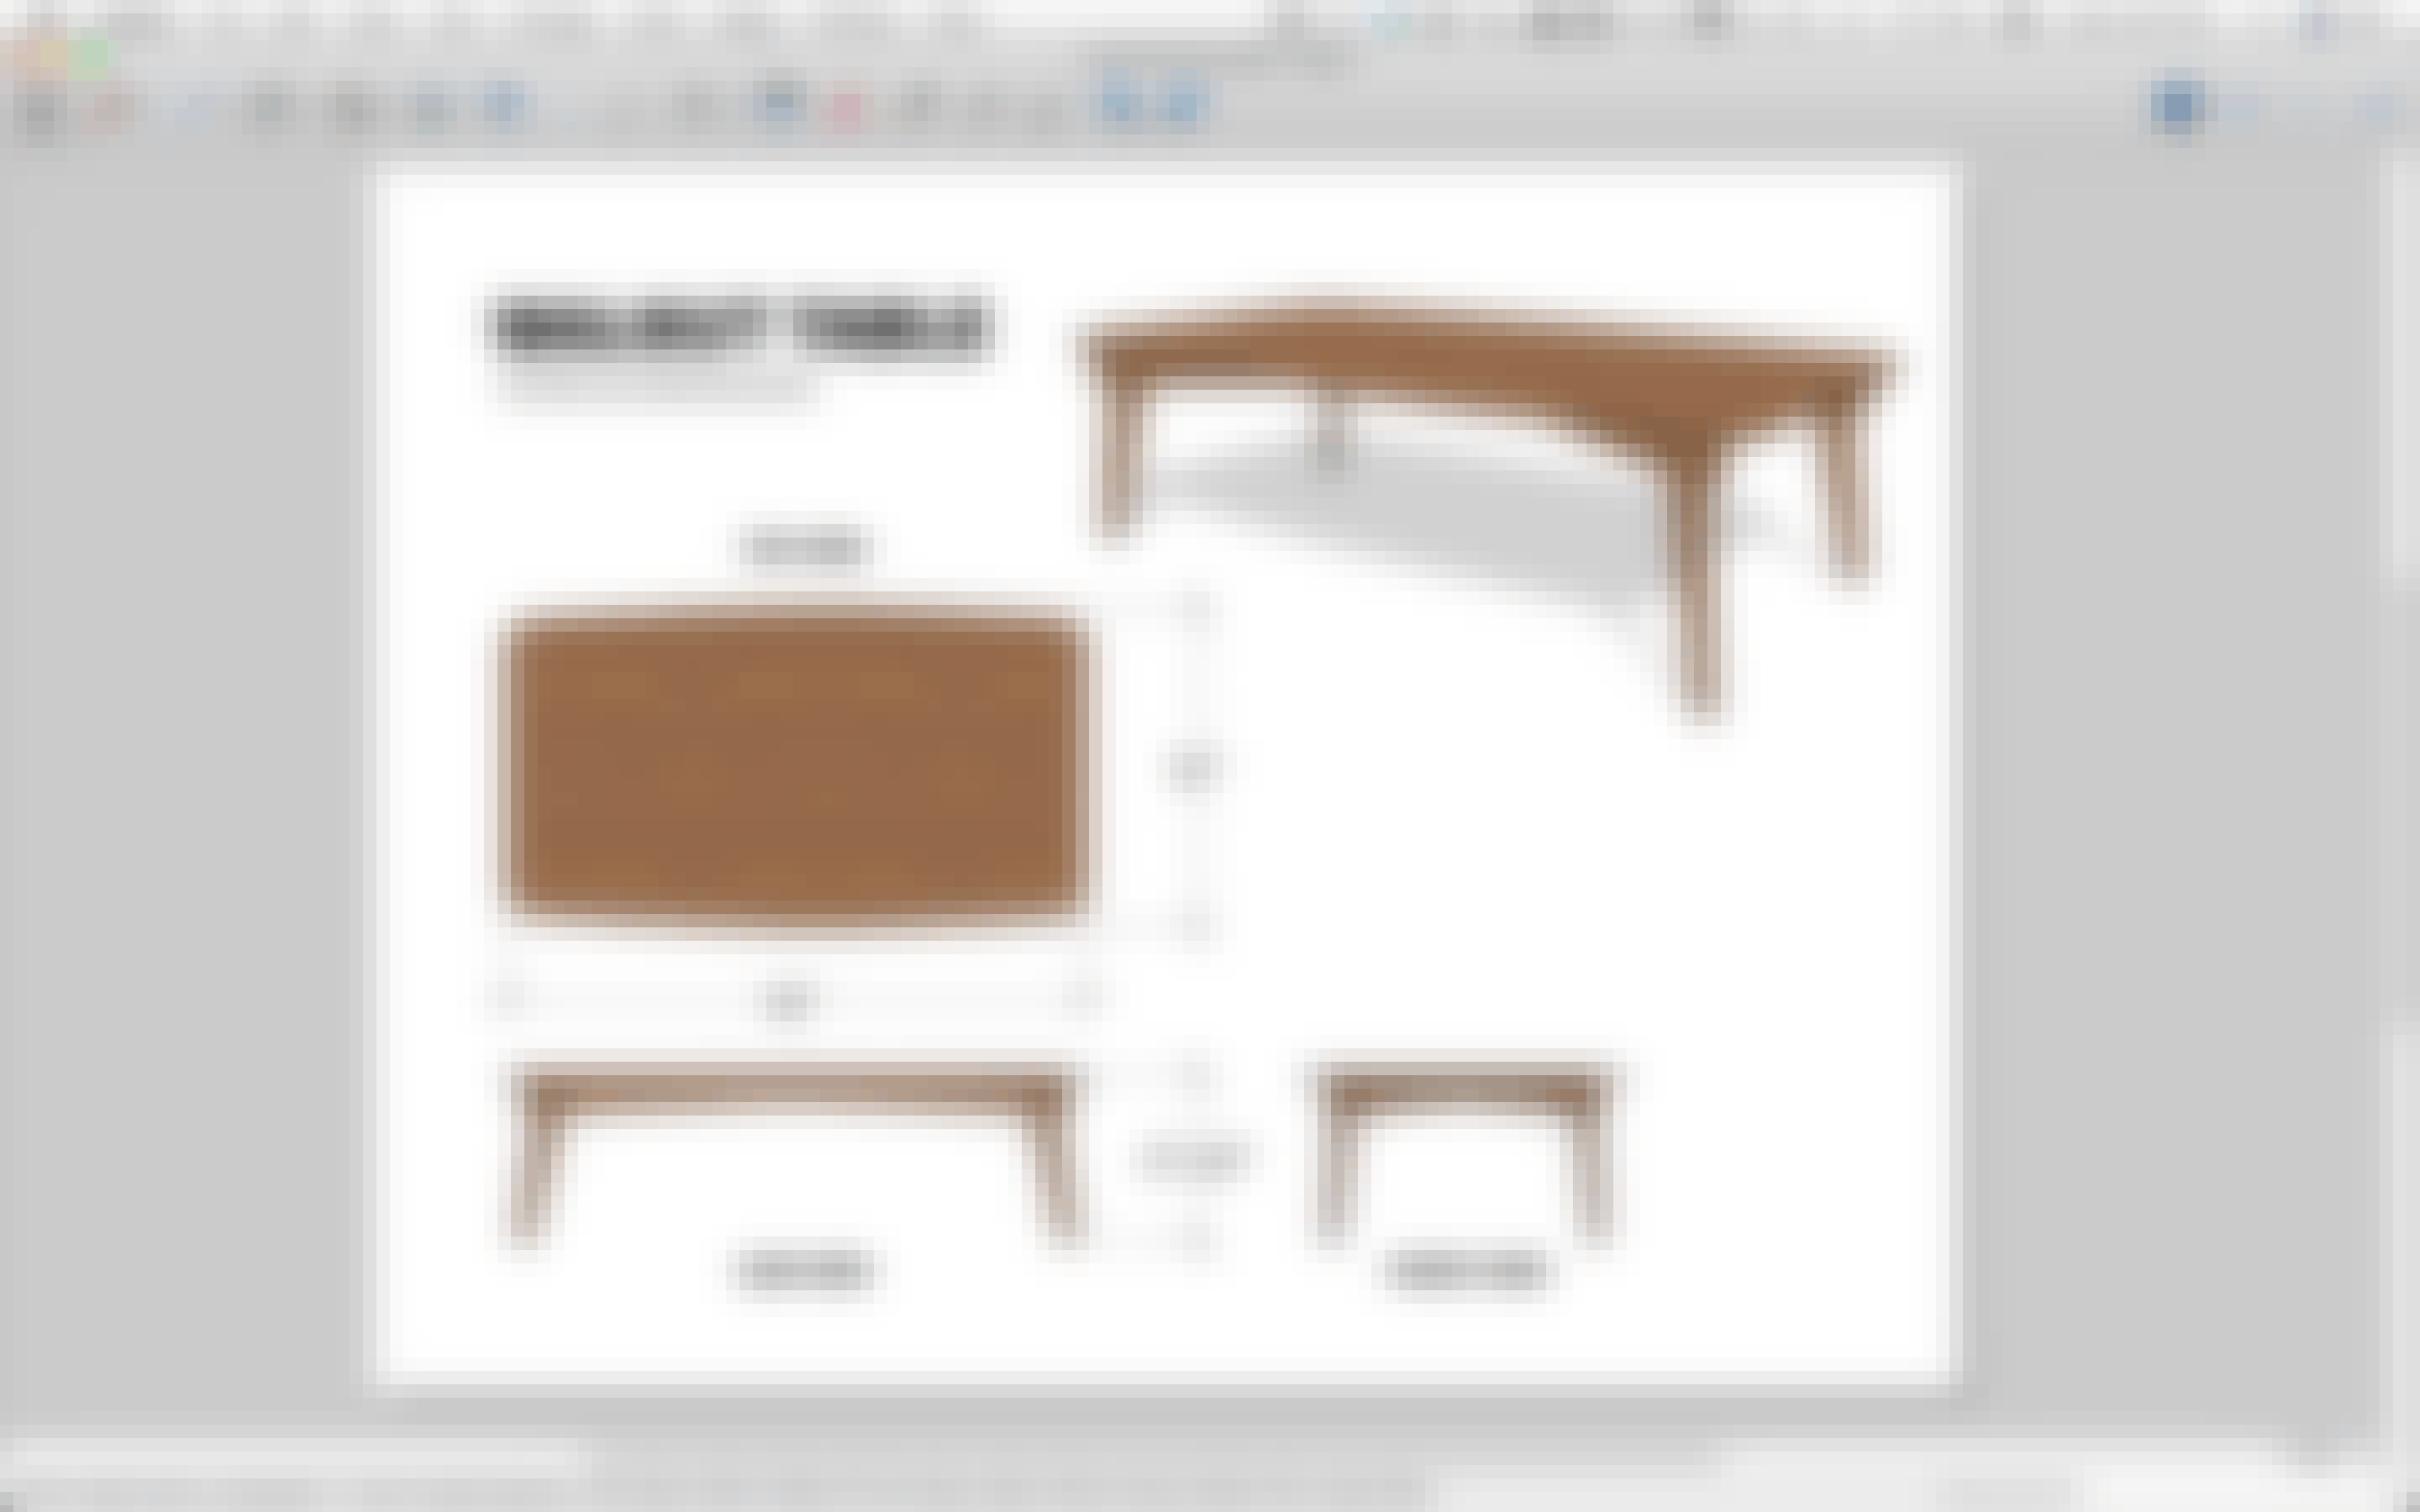 shop drawing of table (views and dimensions)